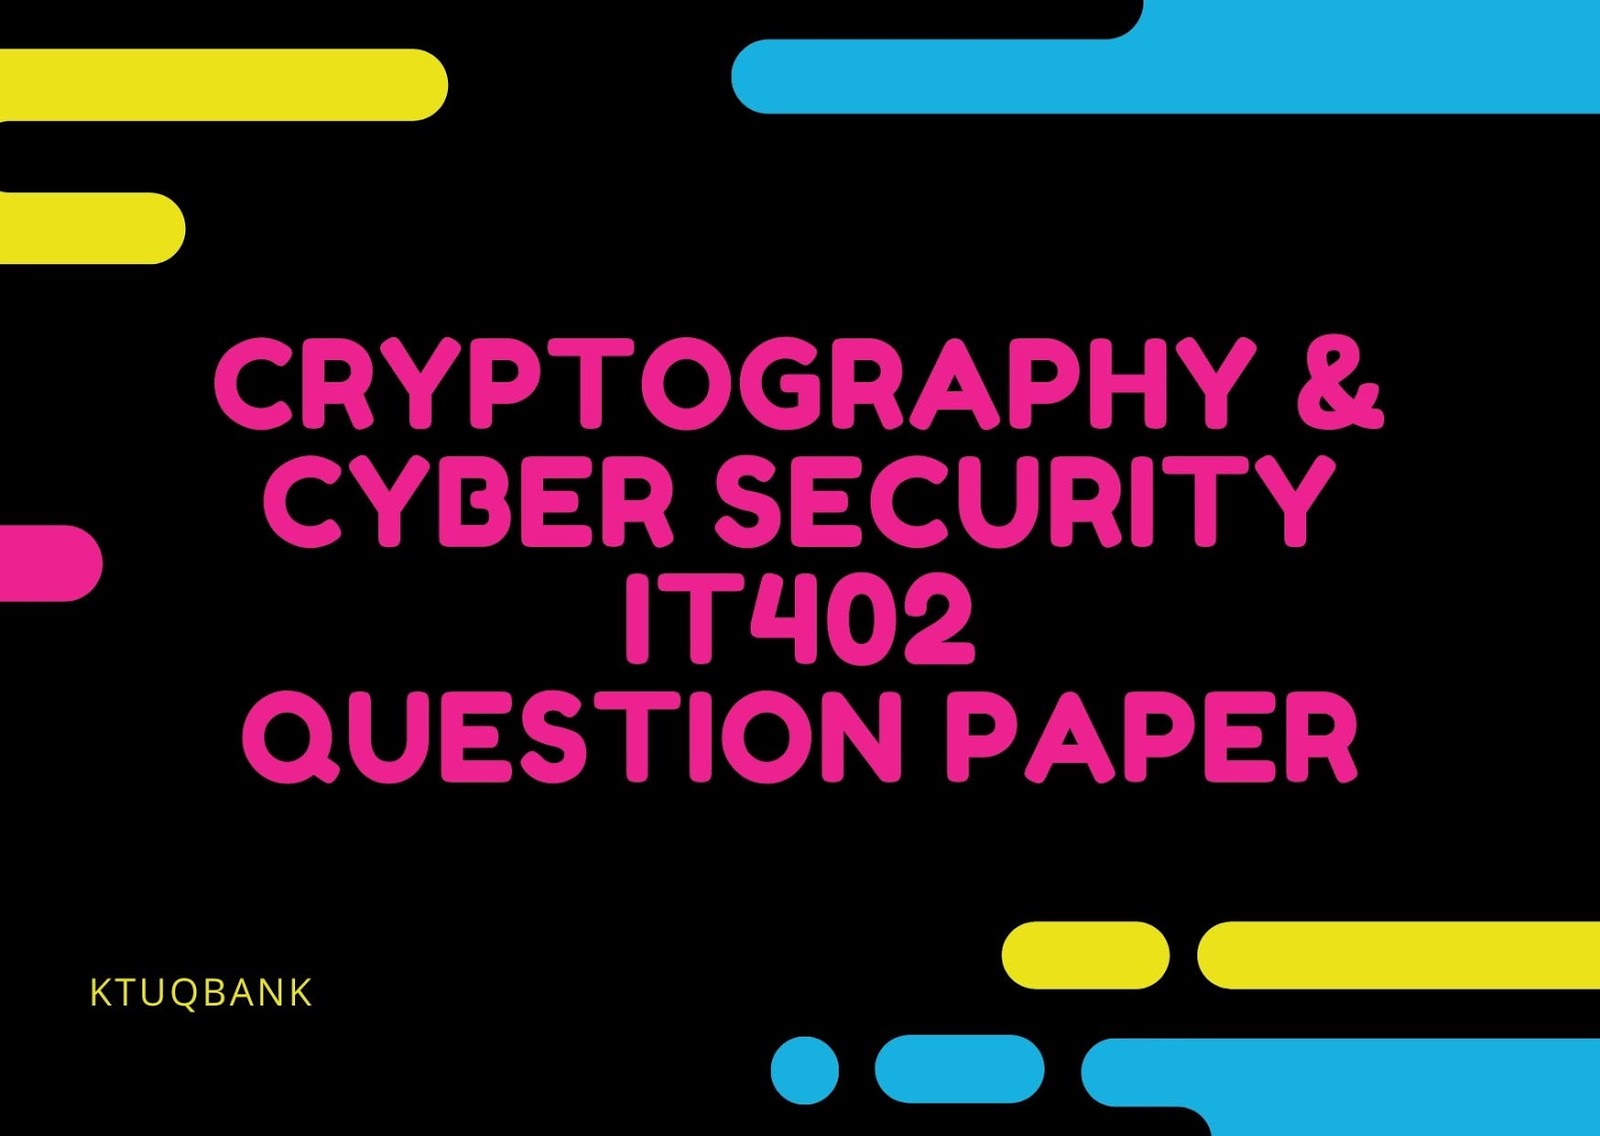 Cryptography & Cyber Security | IT402 | Question Papers (2015 batch)